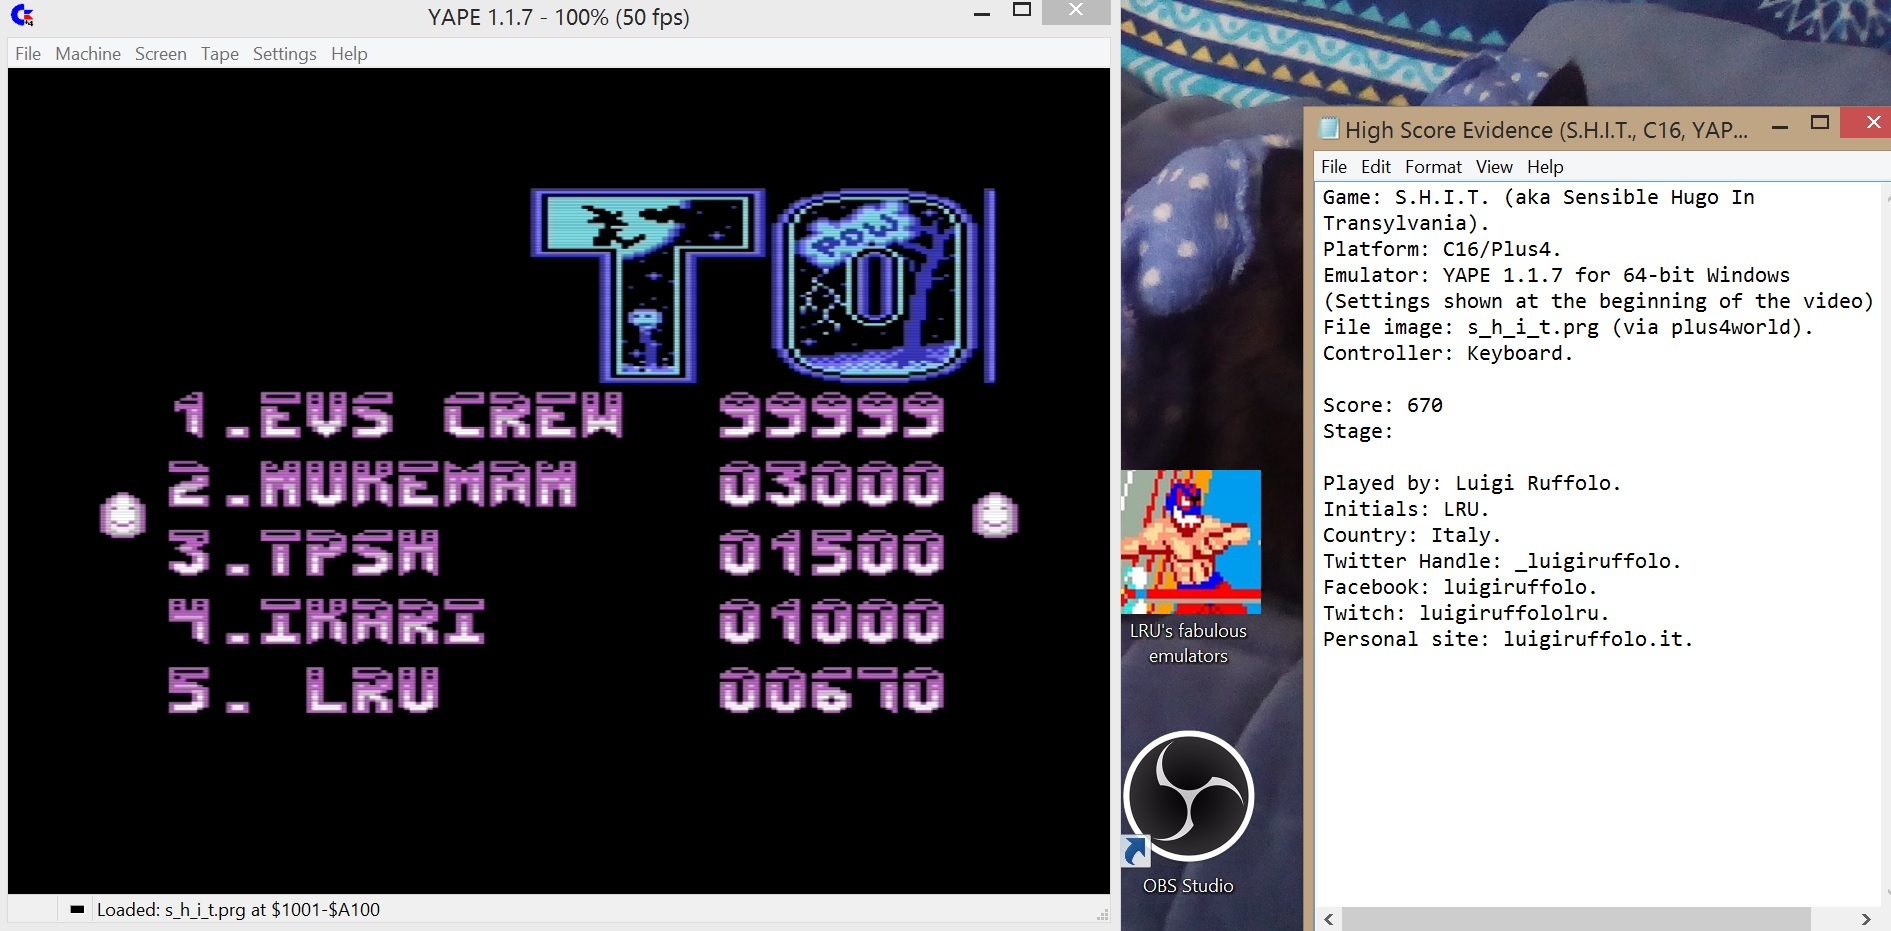 LuigiRuffolo: S.H.I.T. (Commodore 16/Plus4 Emulated) 670 points on 2020-08-04 08:56:29